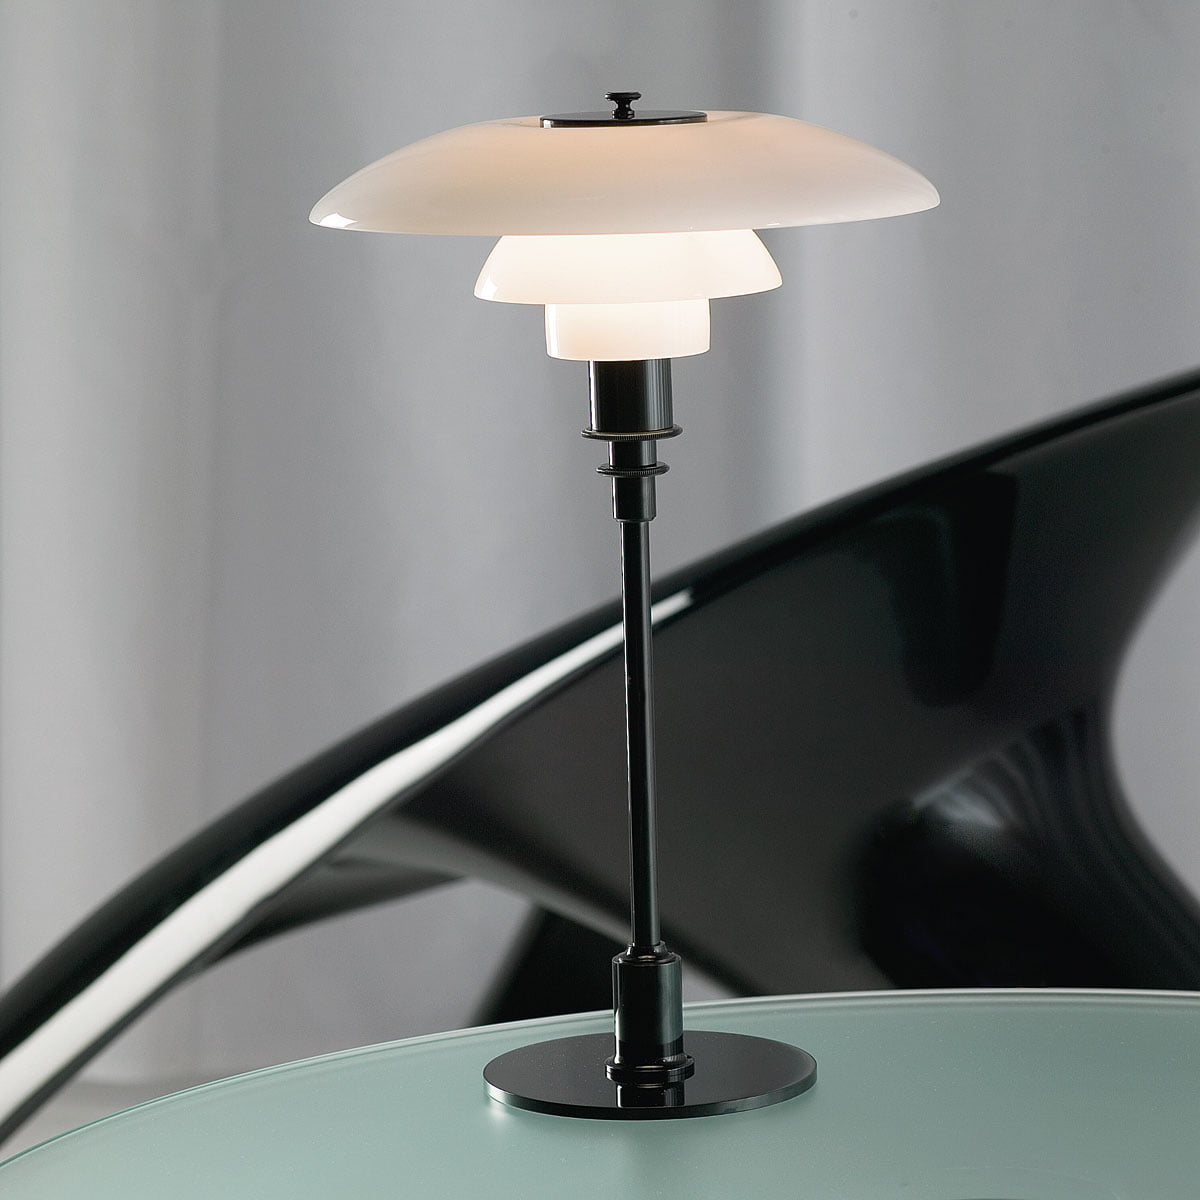 Ph 3 2 Table Lamp Louis Poulsen Shop - Louise Poulsen